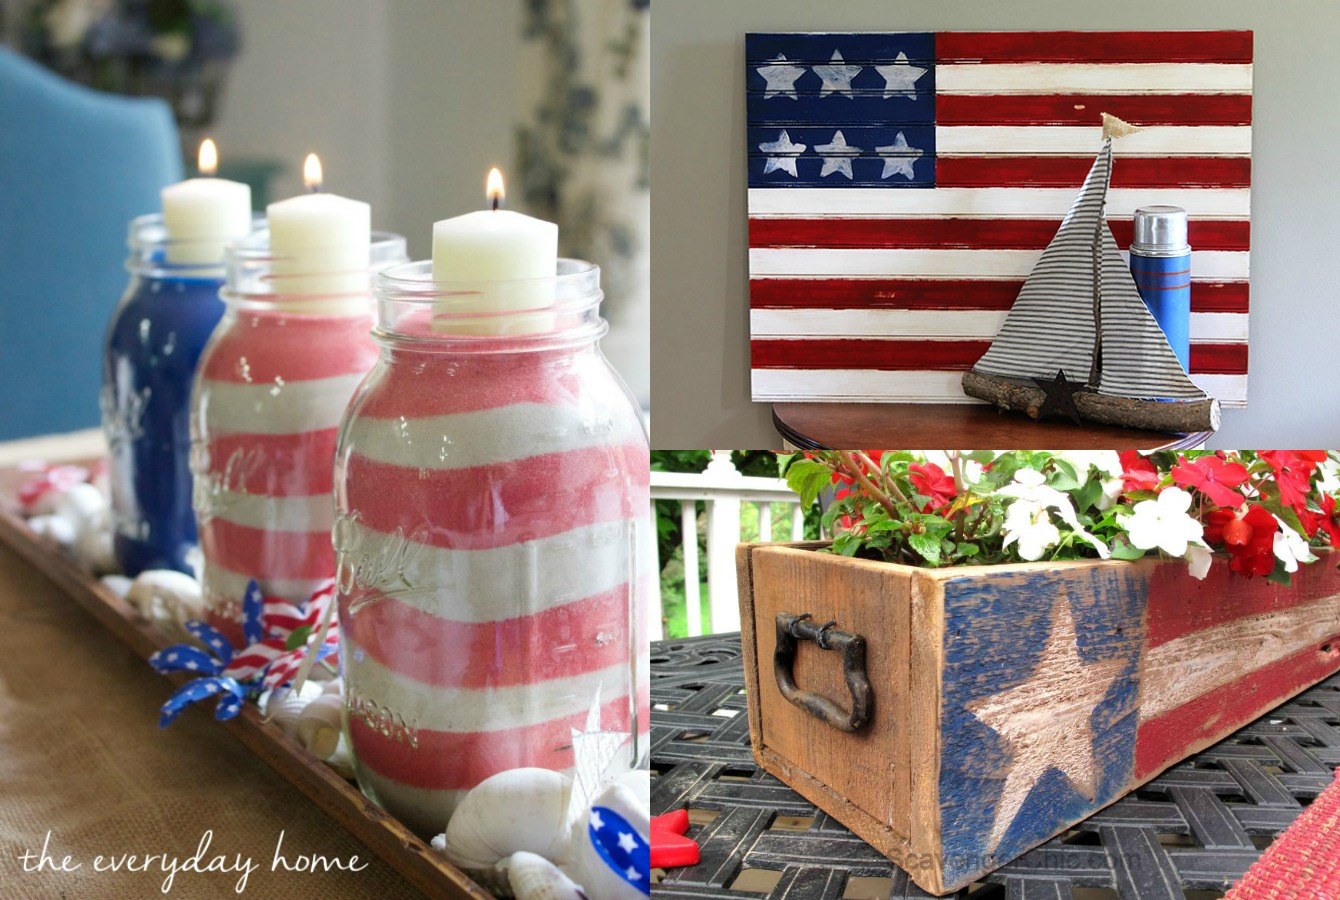 You're going to love these farmhouse style American flag crafts. They're perfect for summer home decor all season long. Get inspired with these patriotic farmhouse decor and DIY ideas.